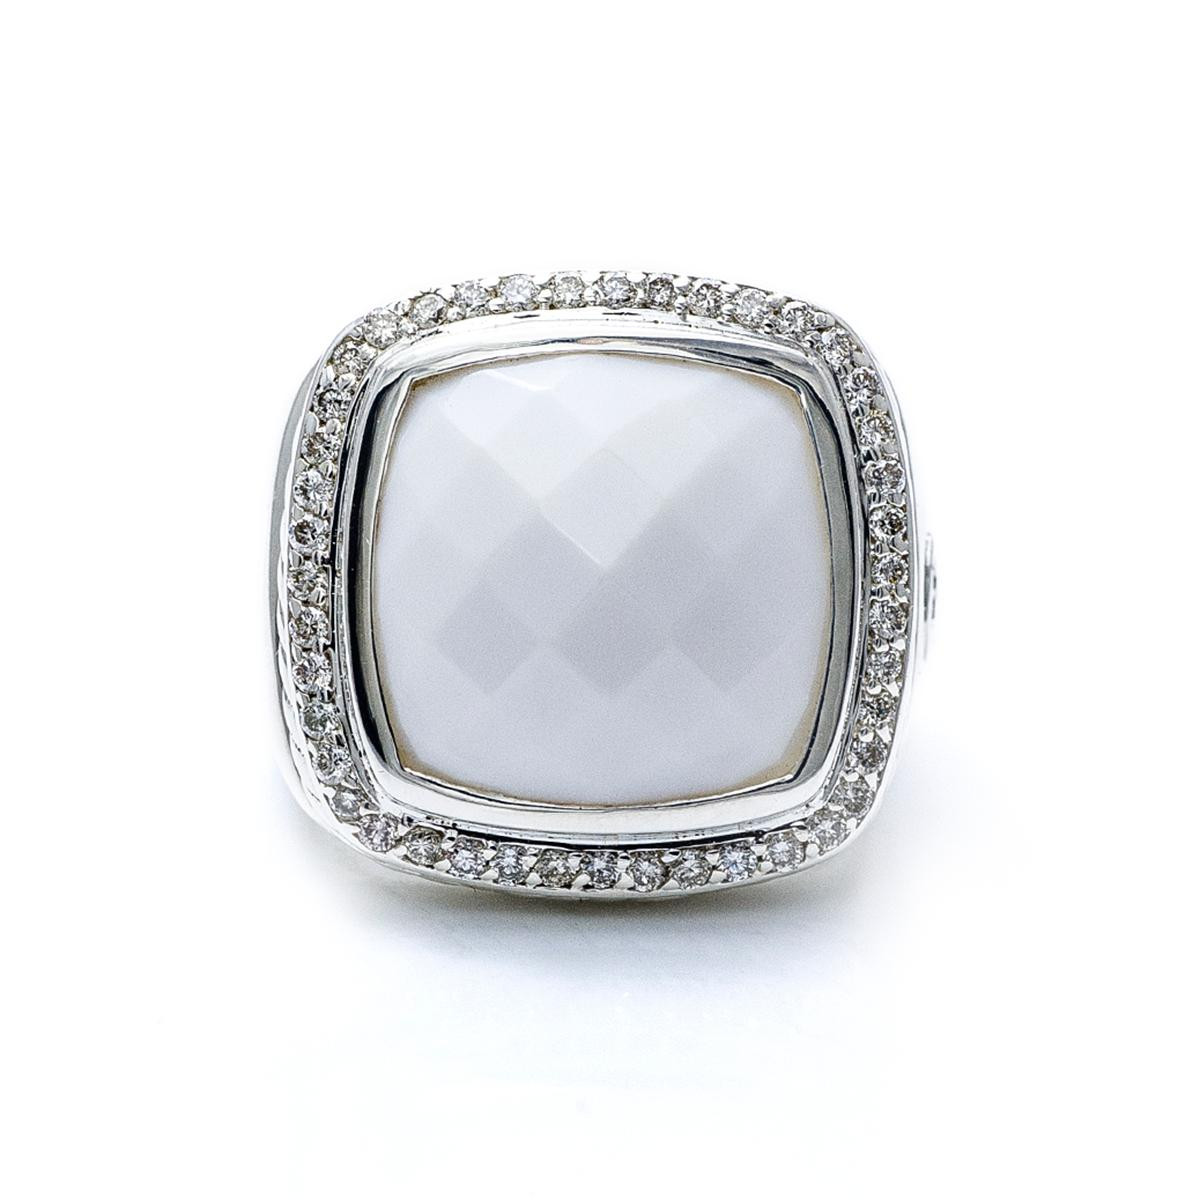 Vintage David Yurman Albion Diamond & White Agate Ring